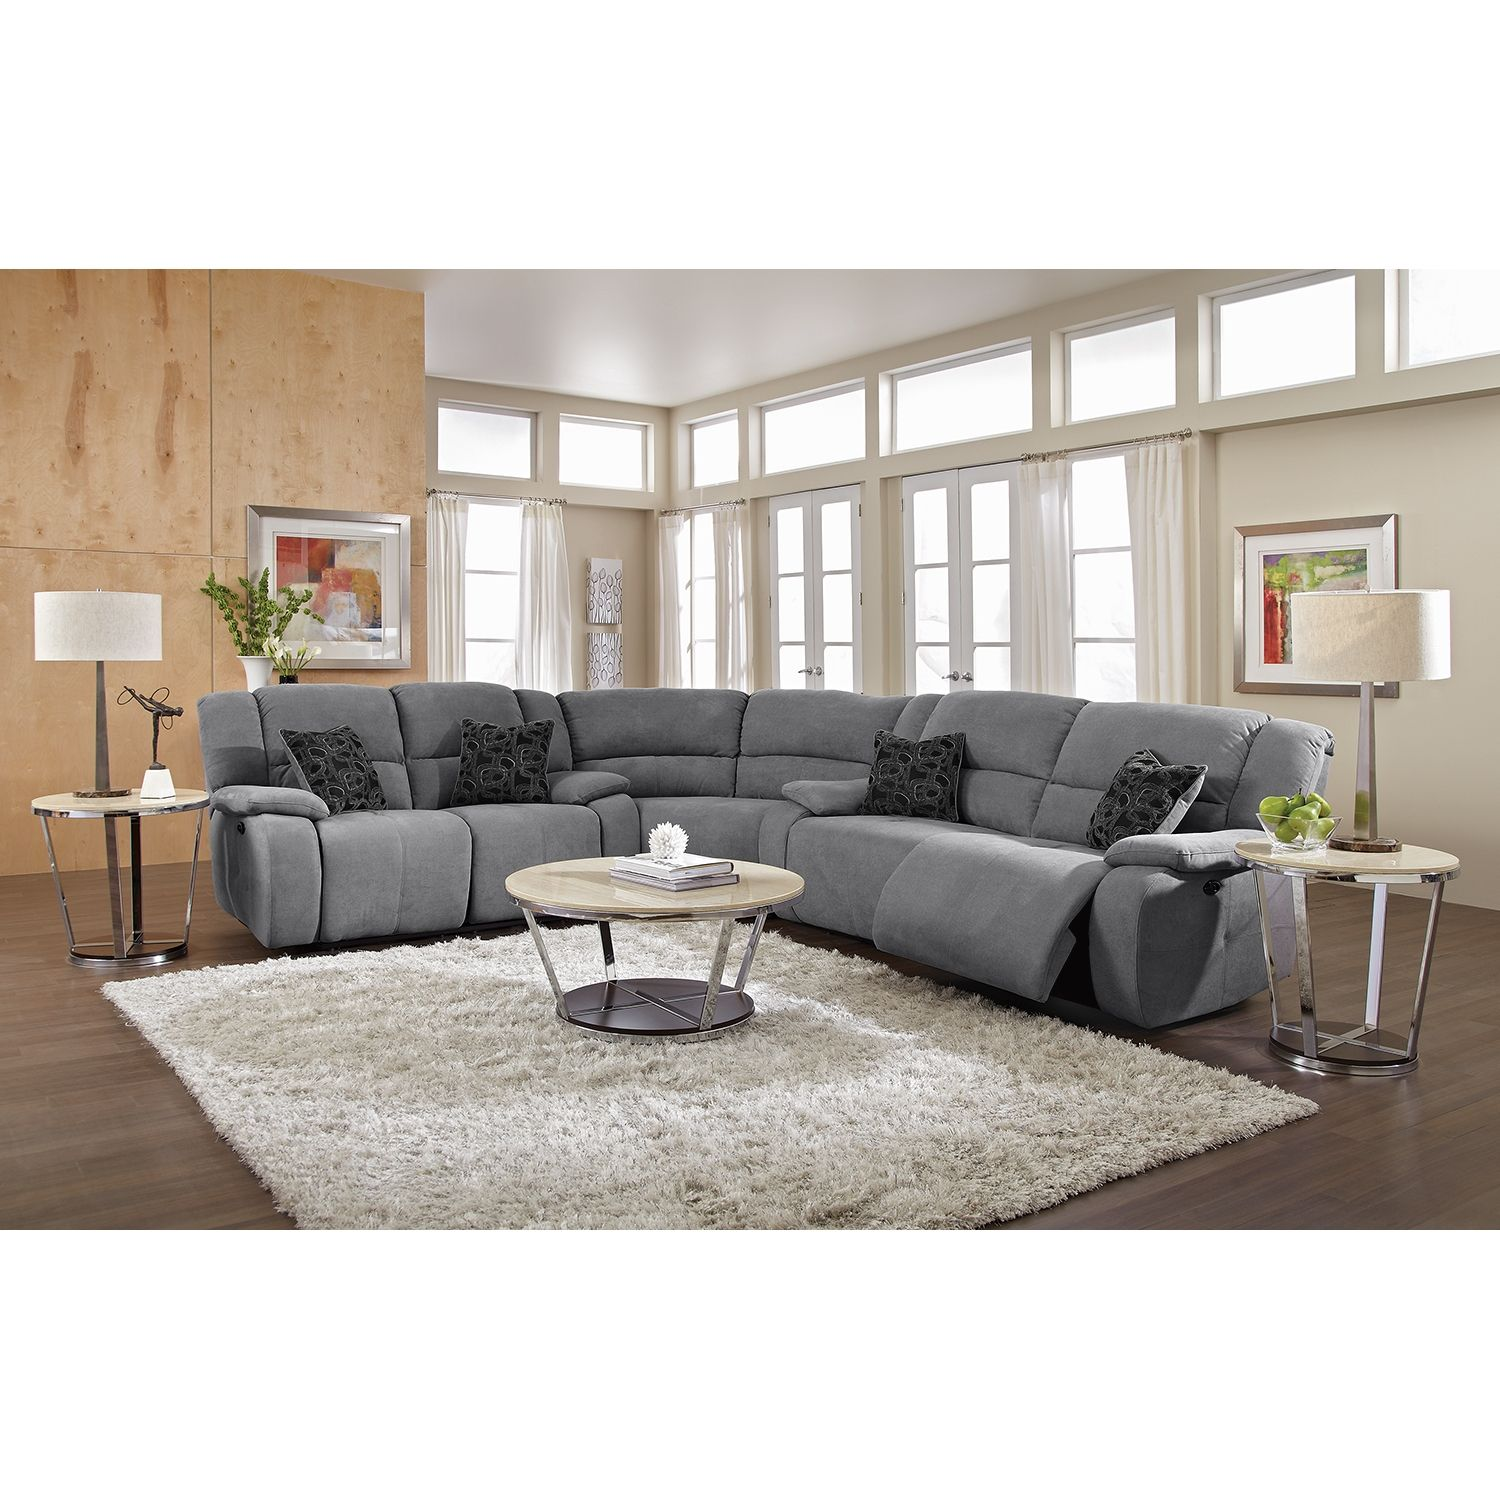 Love this couch gray is awesome future living room for Living area furniture